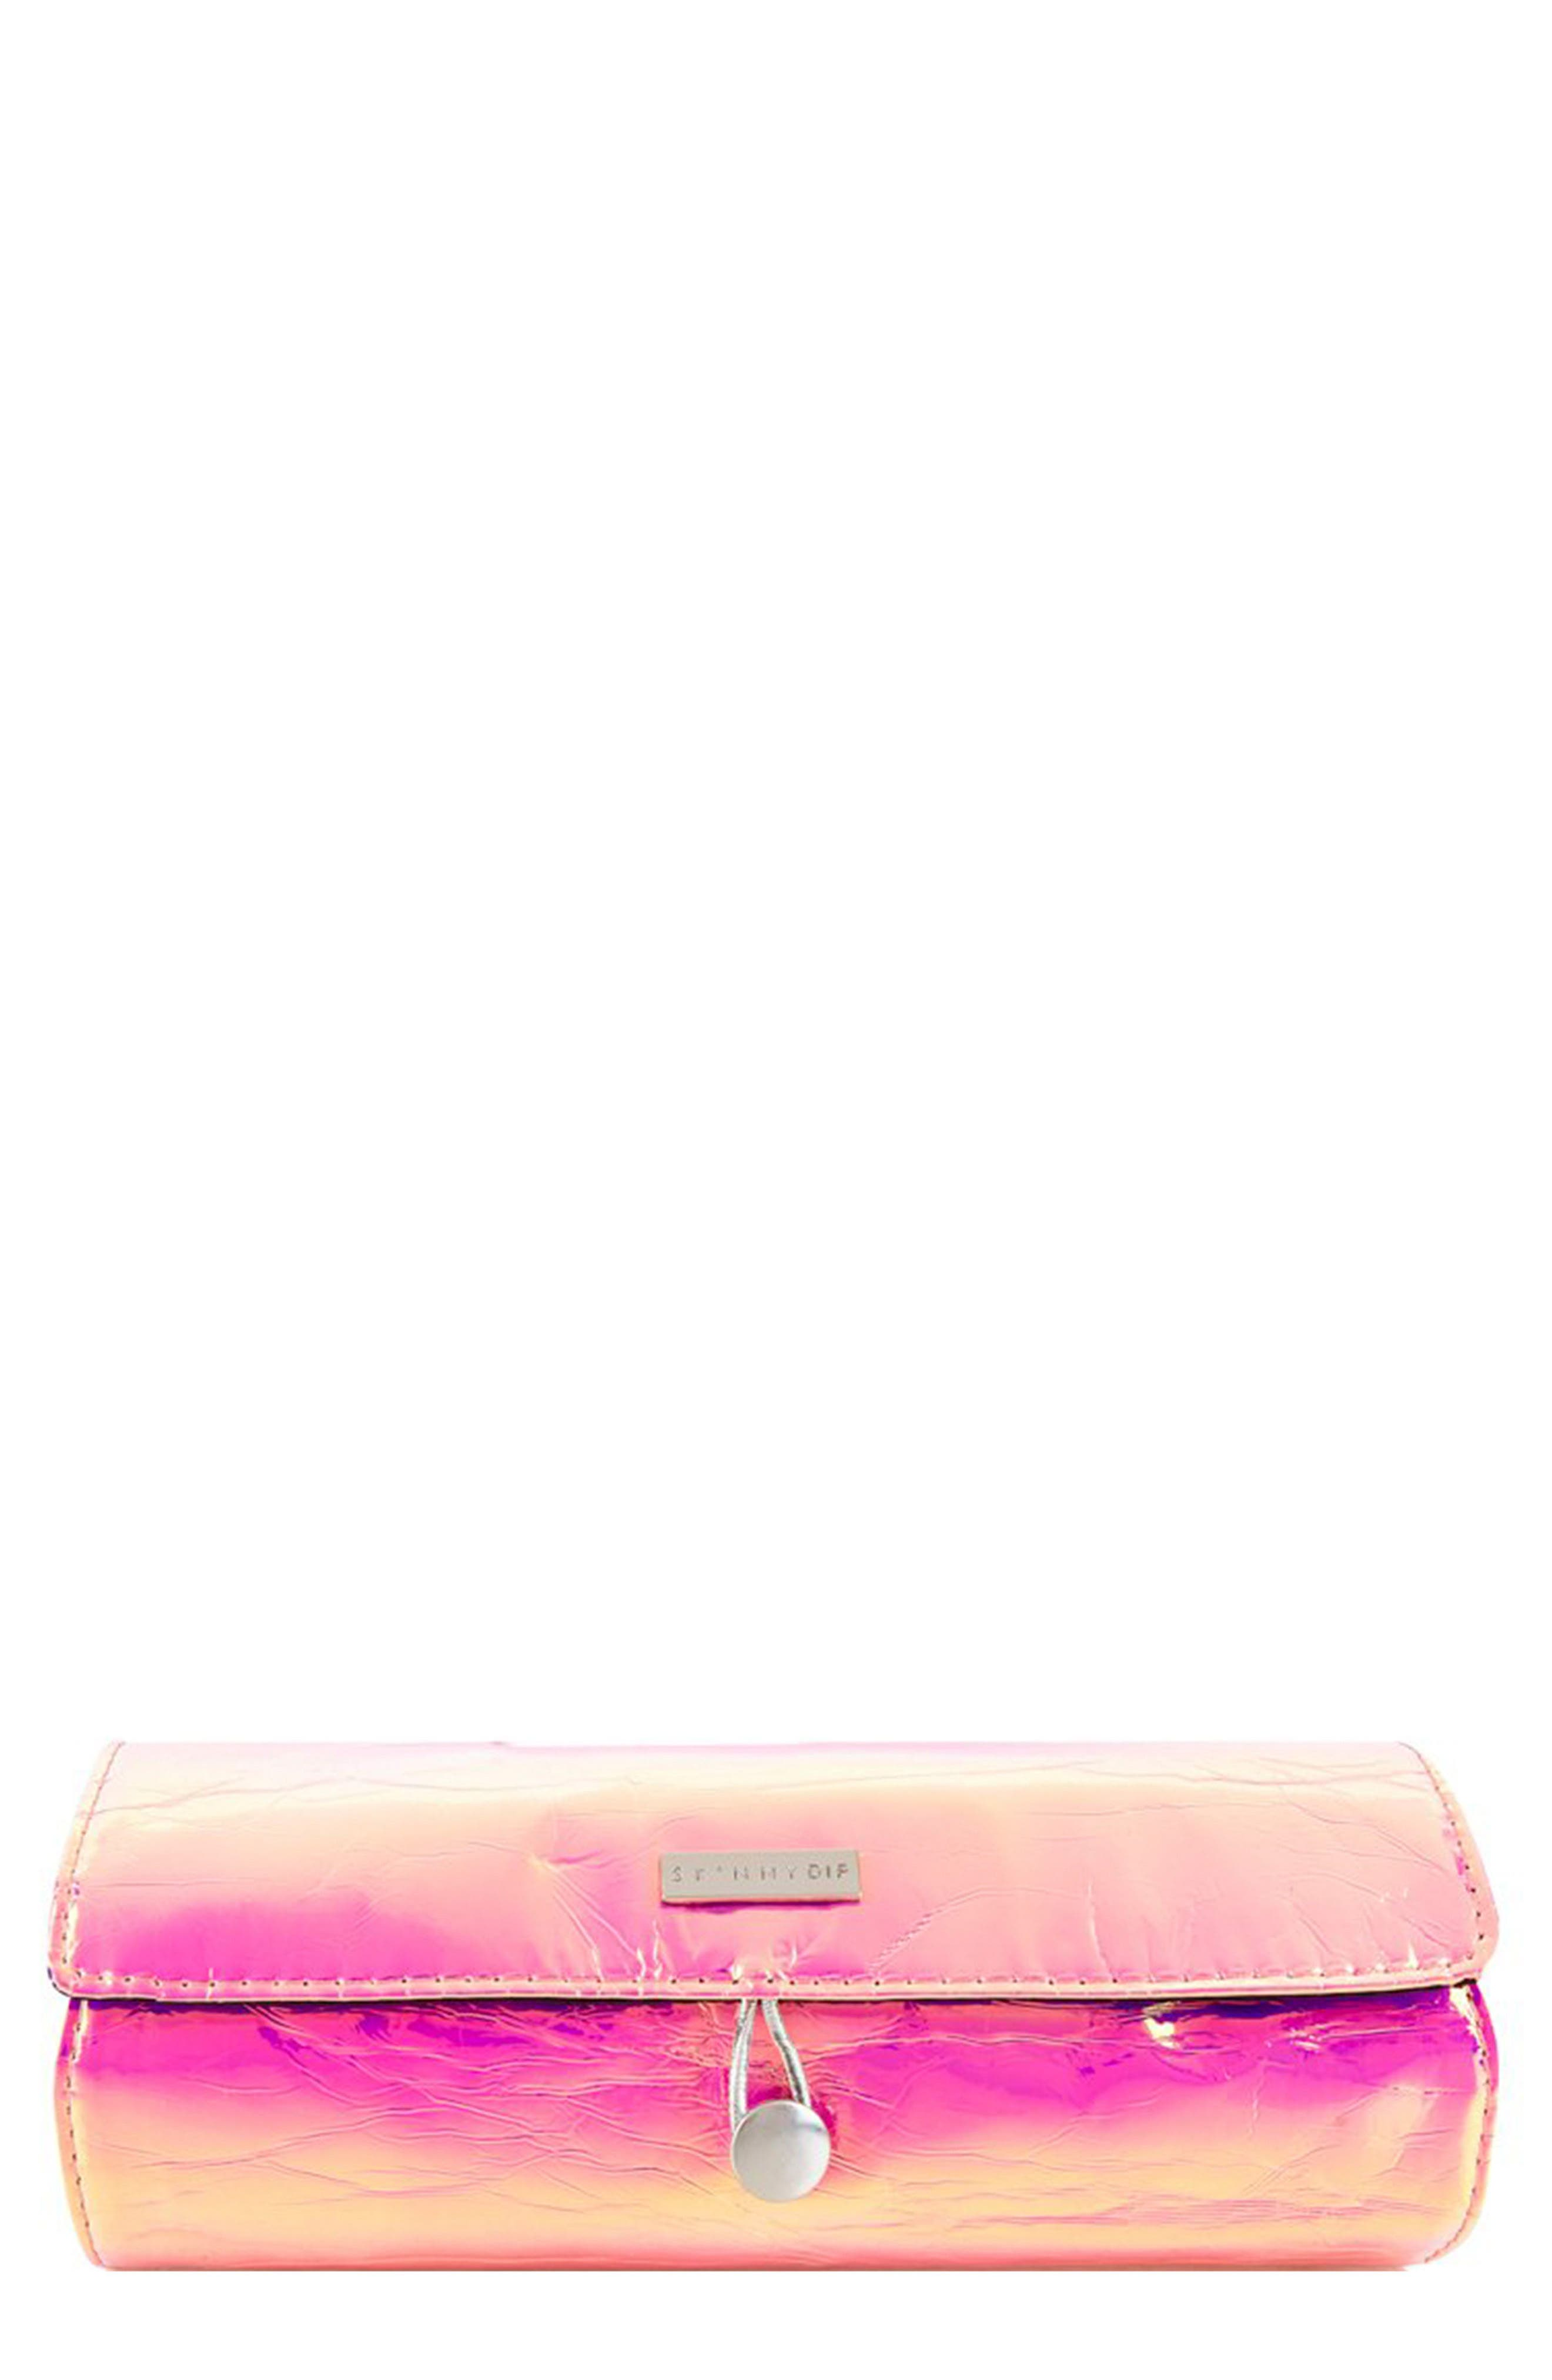 Skinny Dip Pink Iridescent Brush Roll,                             Main thumbnail 1, color,                             No Color